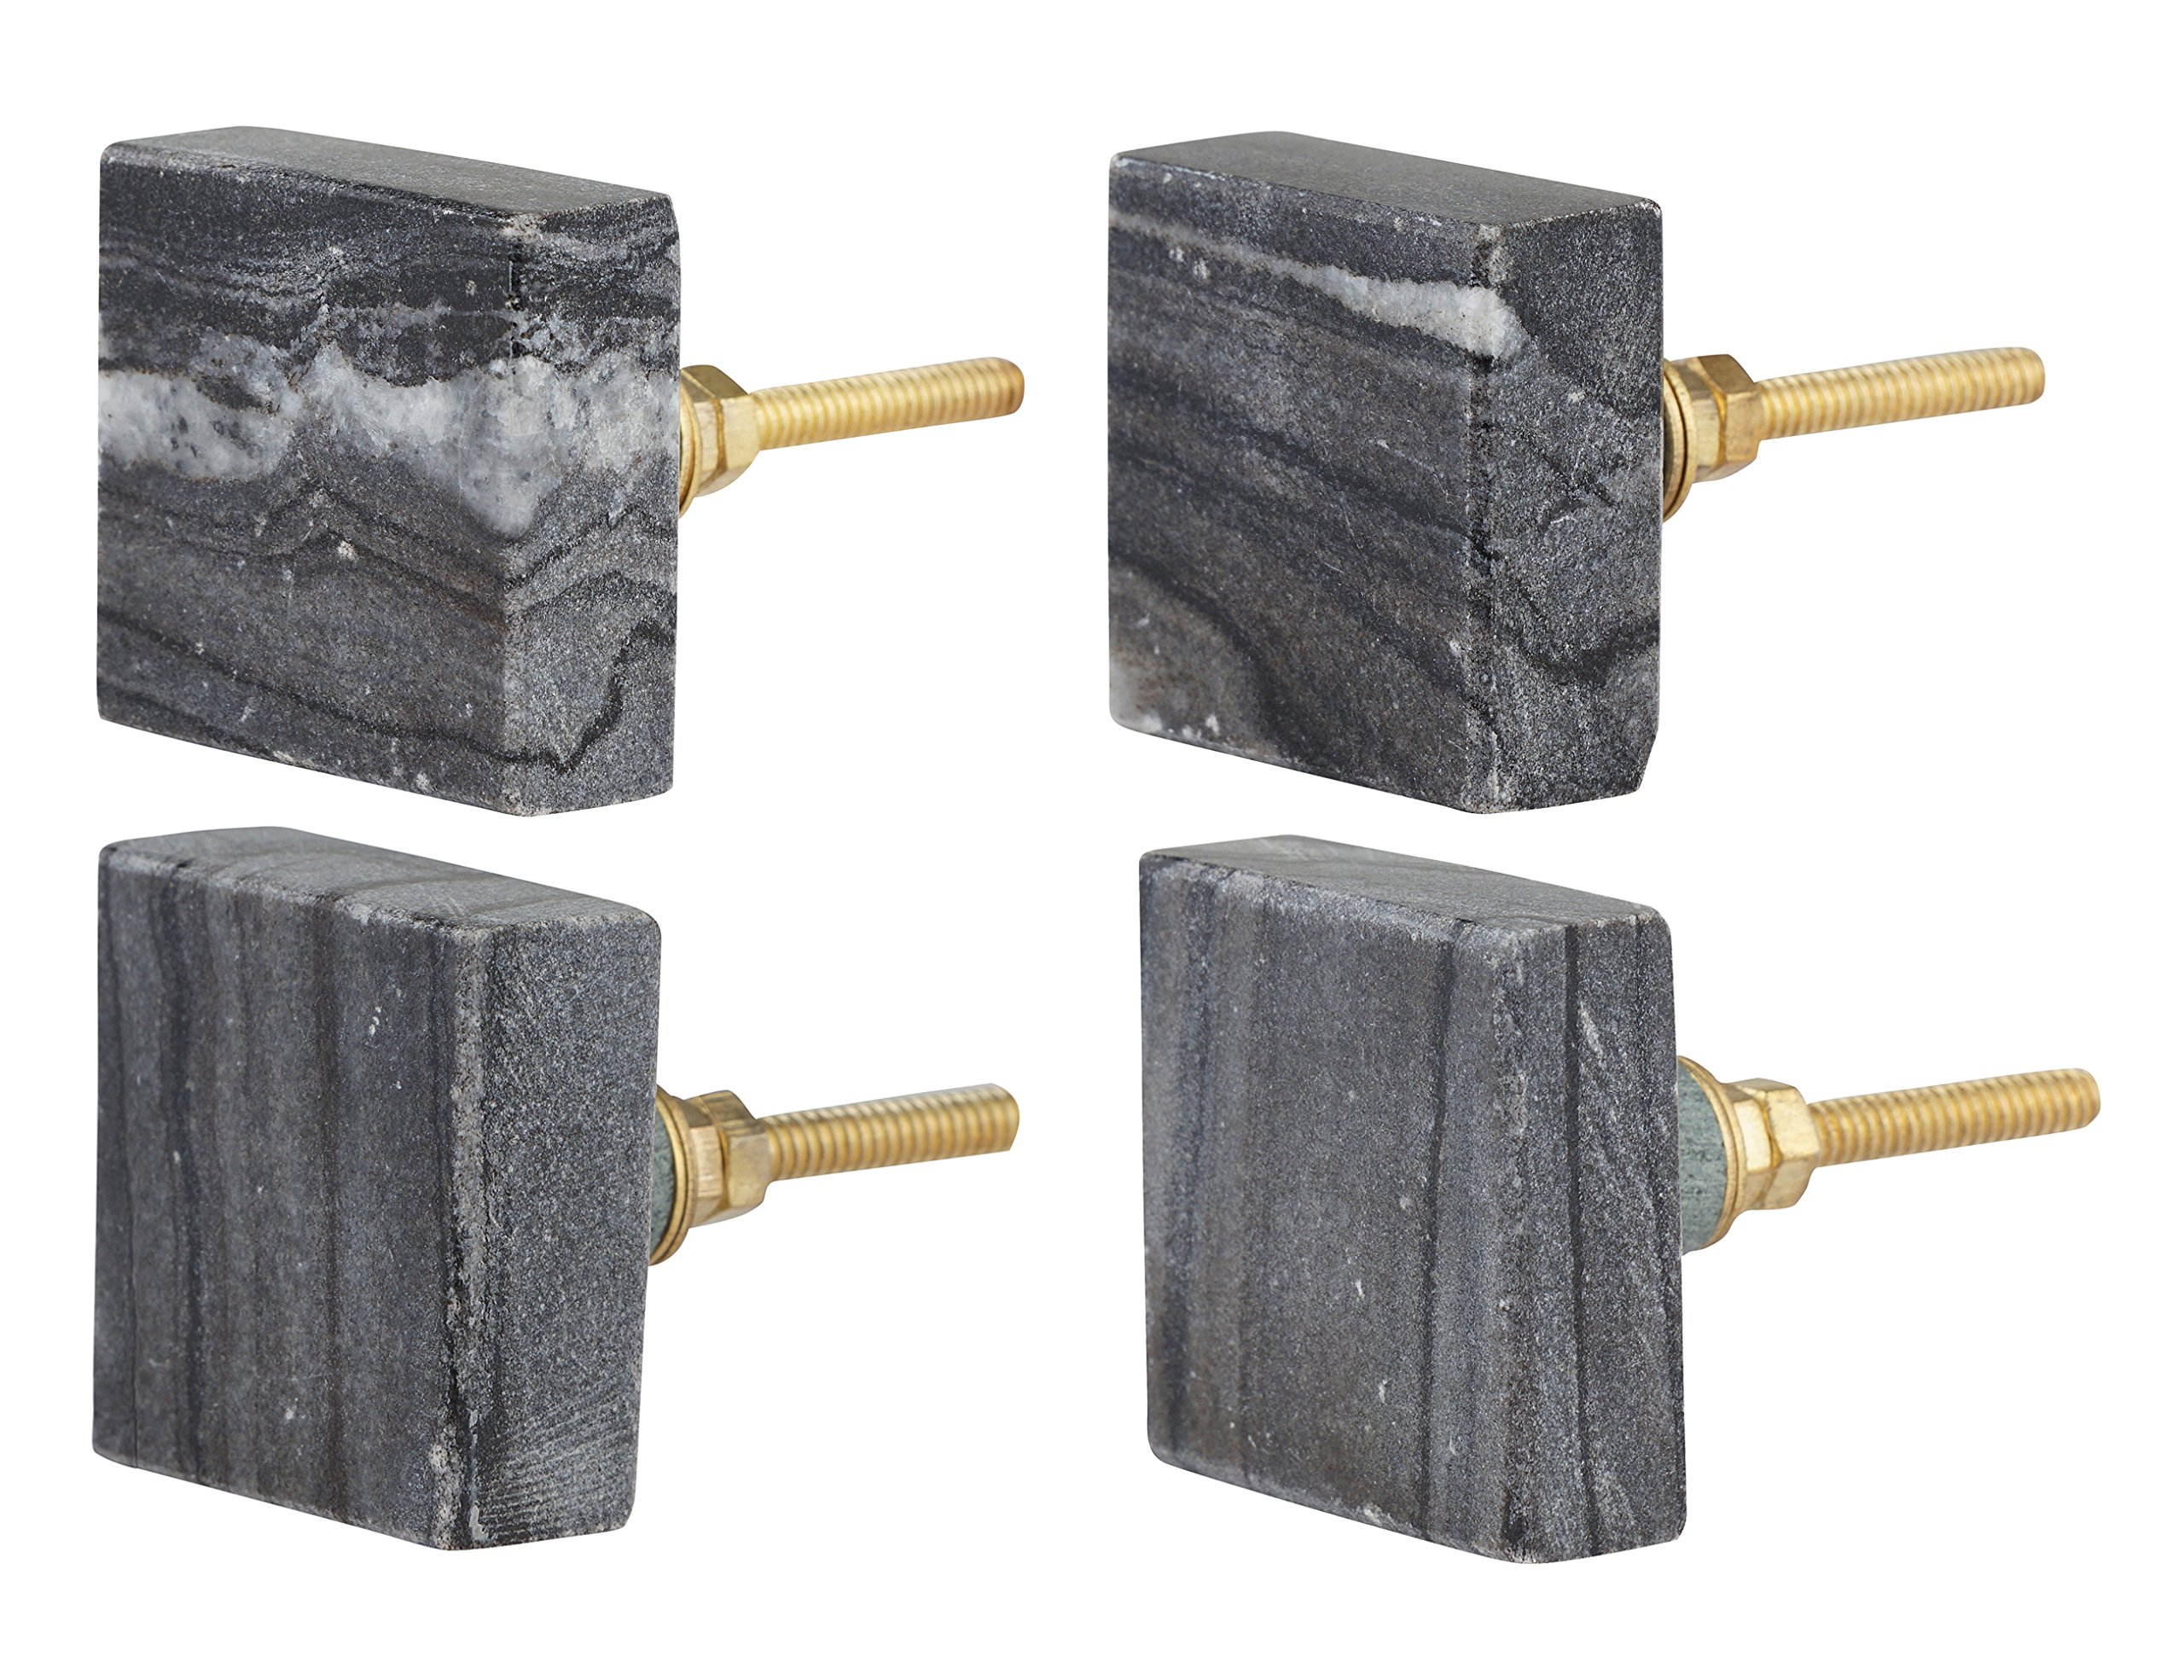 Set of 4 Square Dark Gray Marble Cabinet Knobs – Decorative Drawer Pulls for Dressers, Drawers and Cabinets – Square Modern Cabinet Hardware for Bathrooms, Kitchens by Artisanal Creations